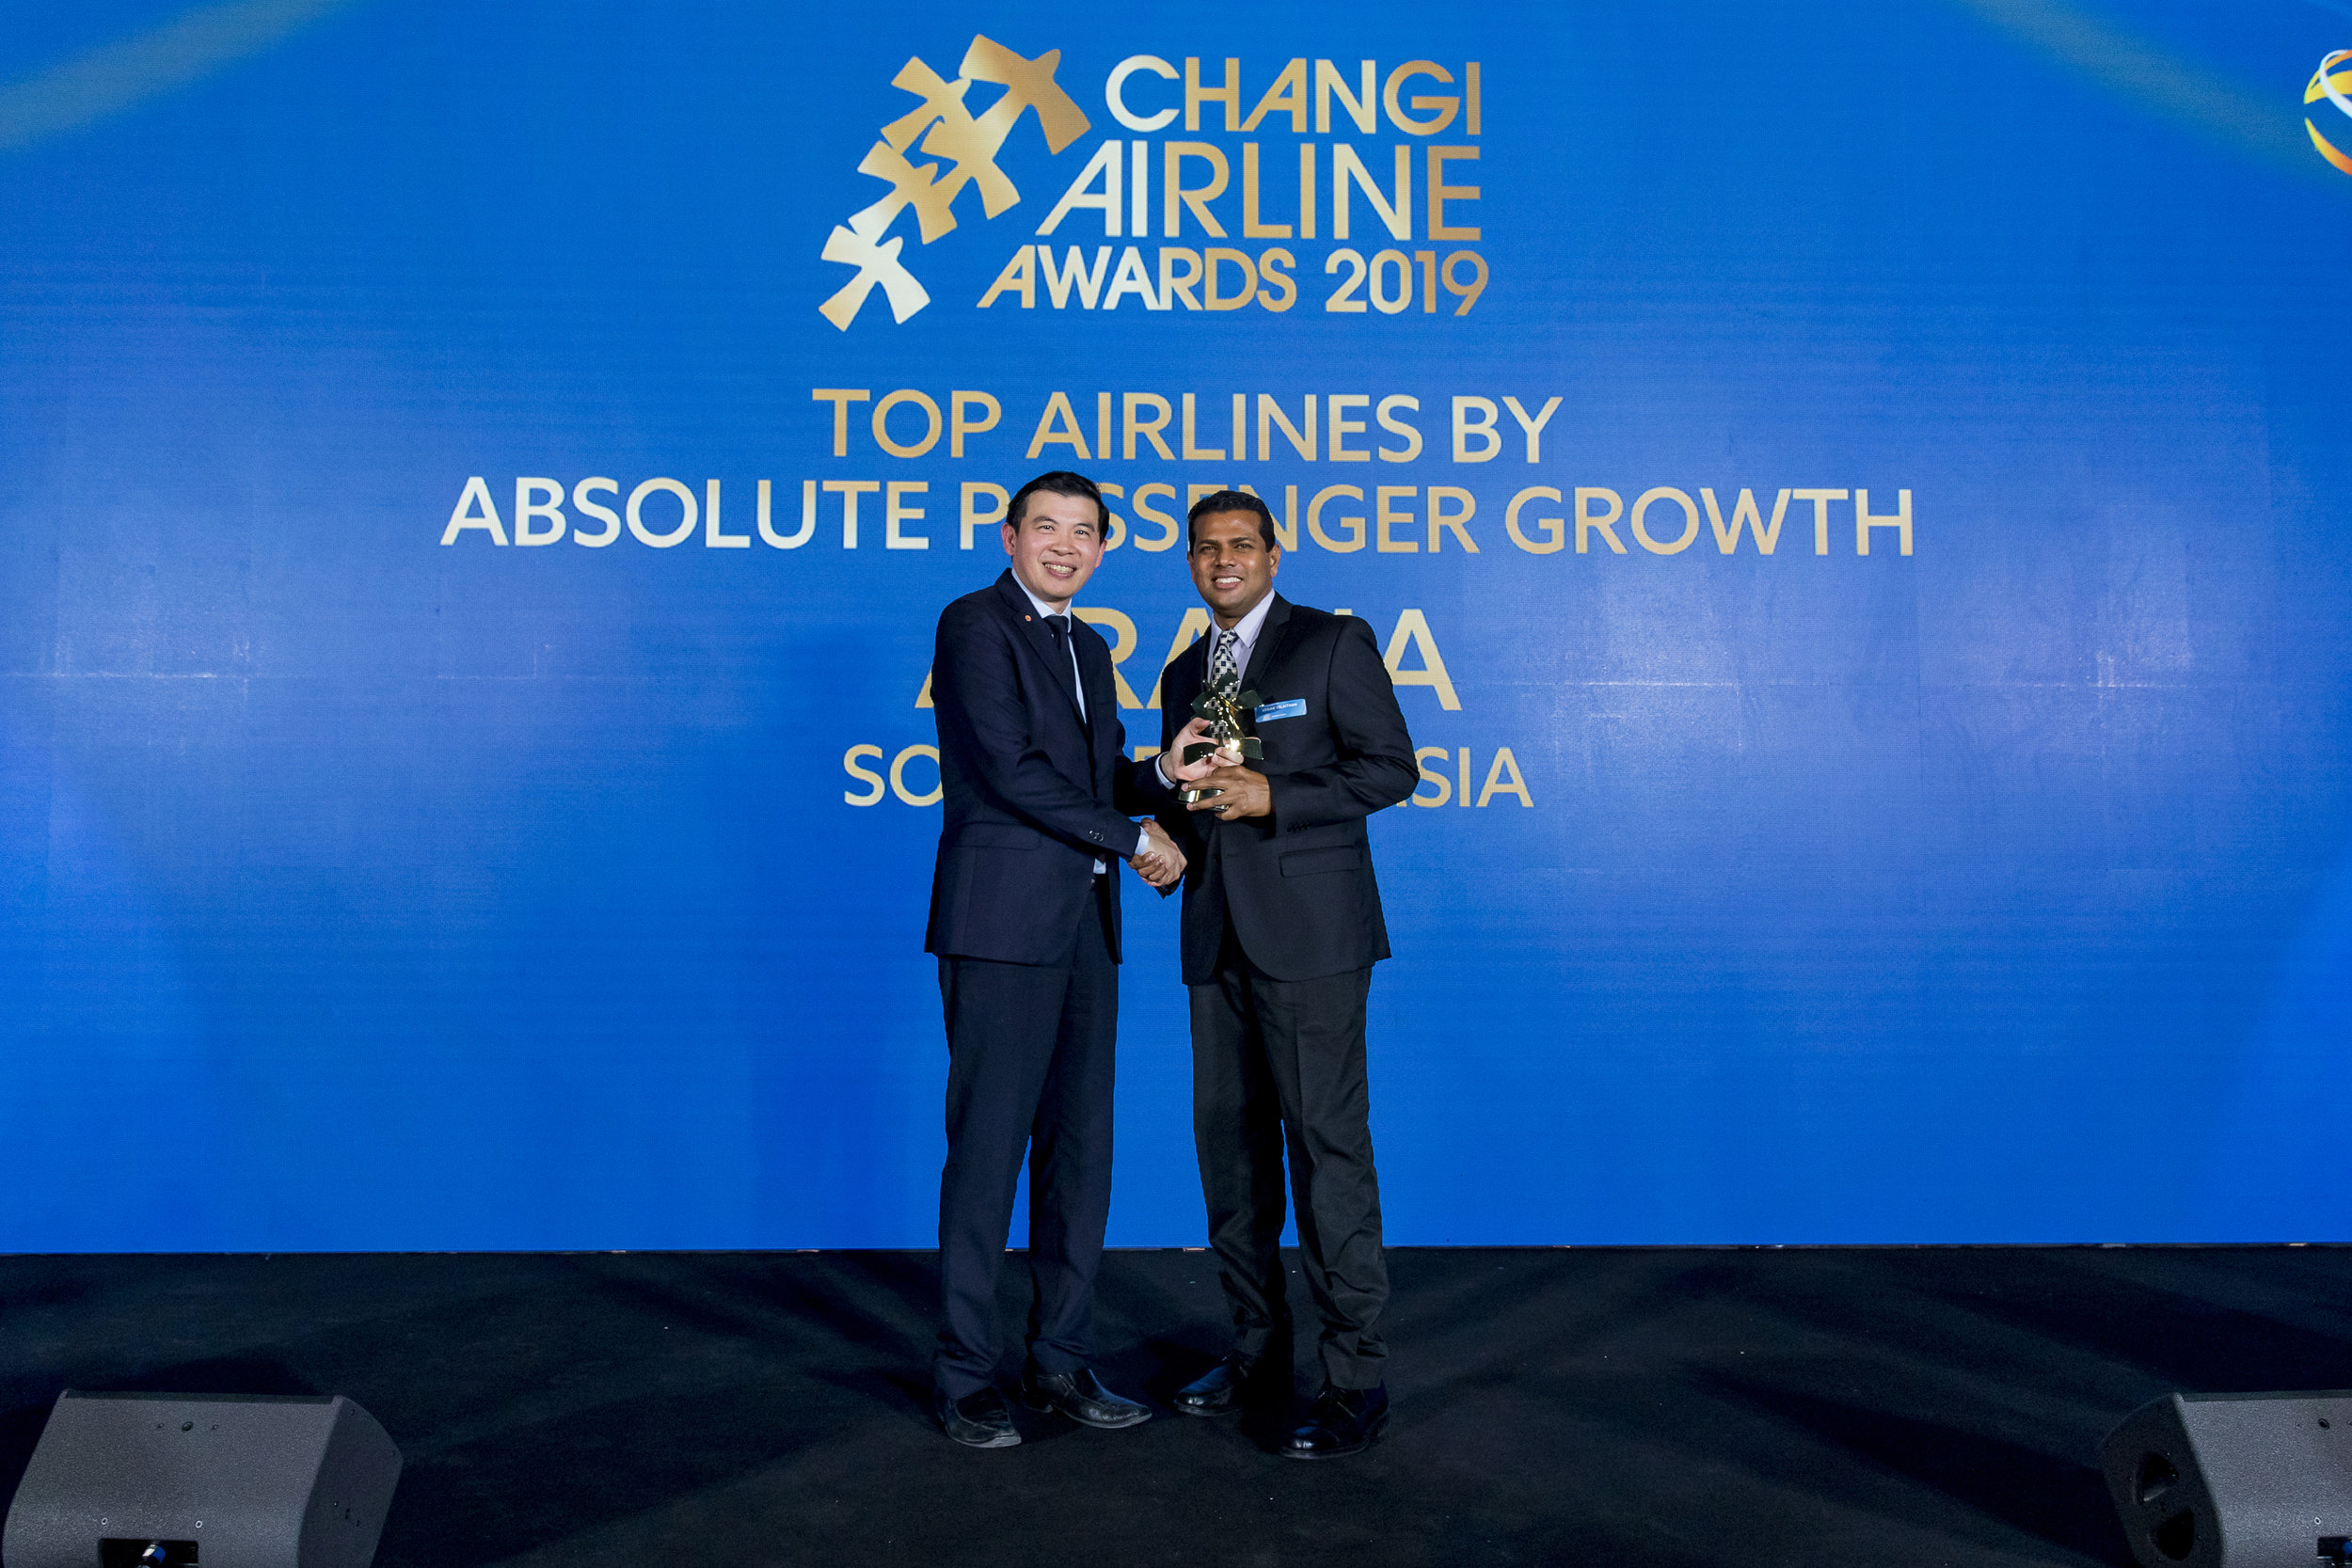 AirAsia Singapore CEO and AirAsia Philippines Chief Executive Advisor Logan Velaitham receiving the award from Mr Lee Seow Hiang, CEO of Changi Airport Group